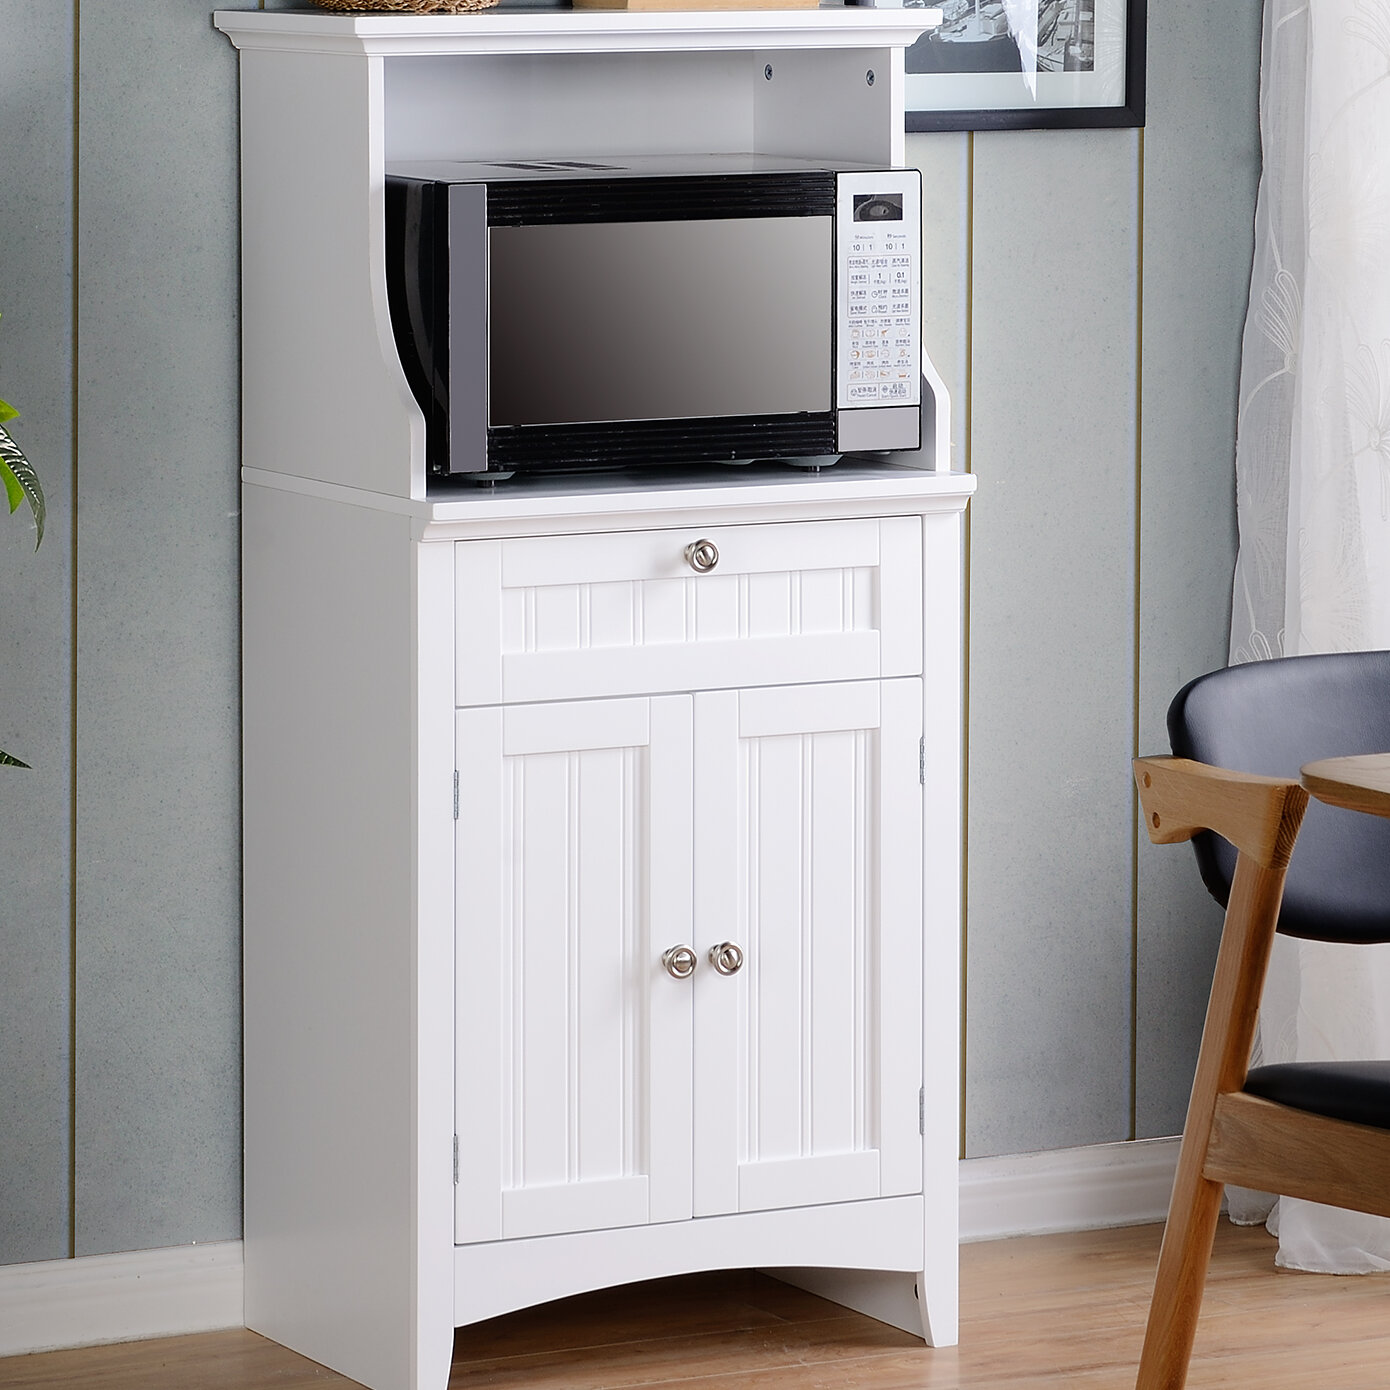 OS Home & Office Furniture Microwave/Coffee Maker Kitchen Island ...